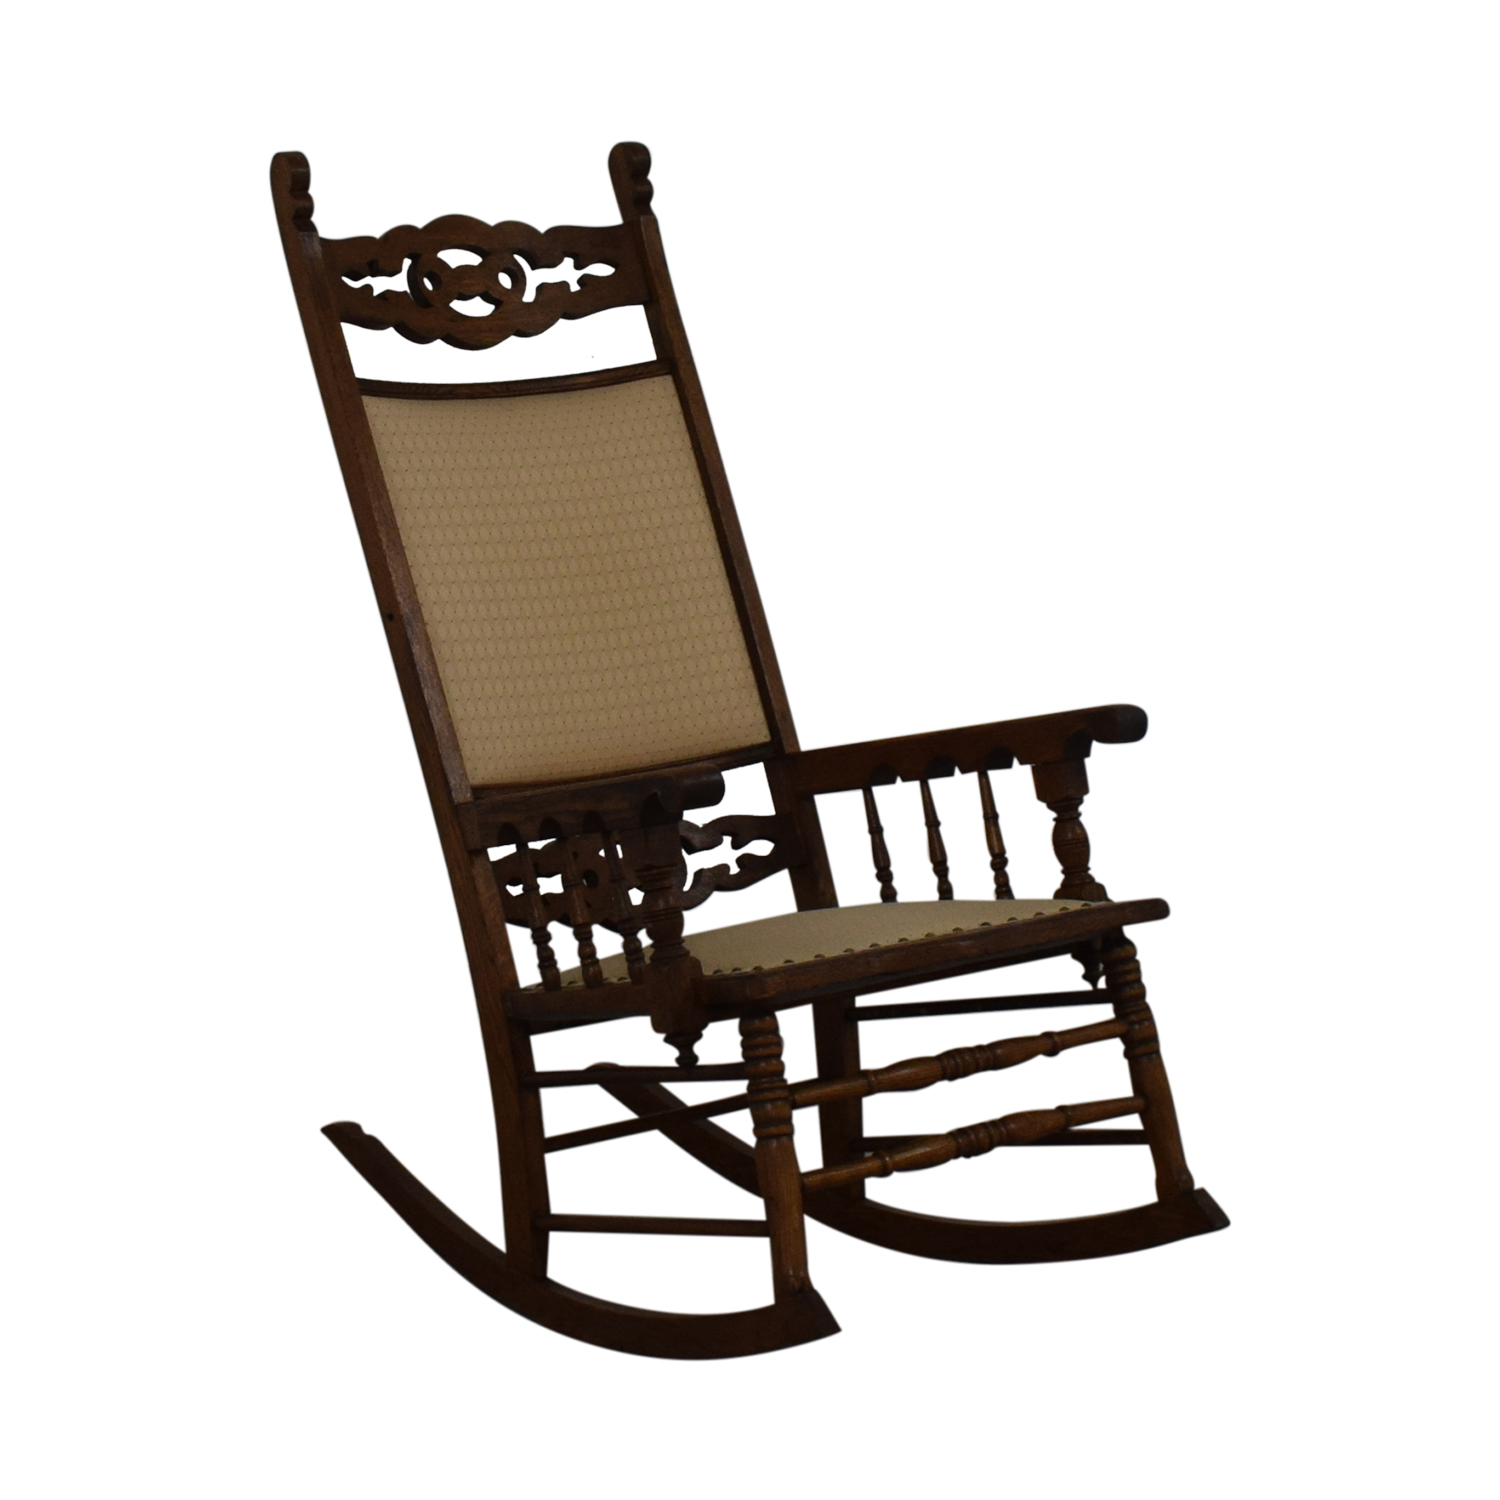 Rustic Rocking Chair for sale